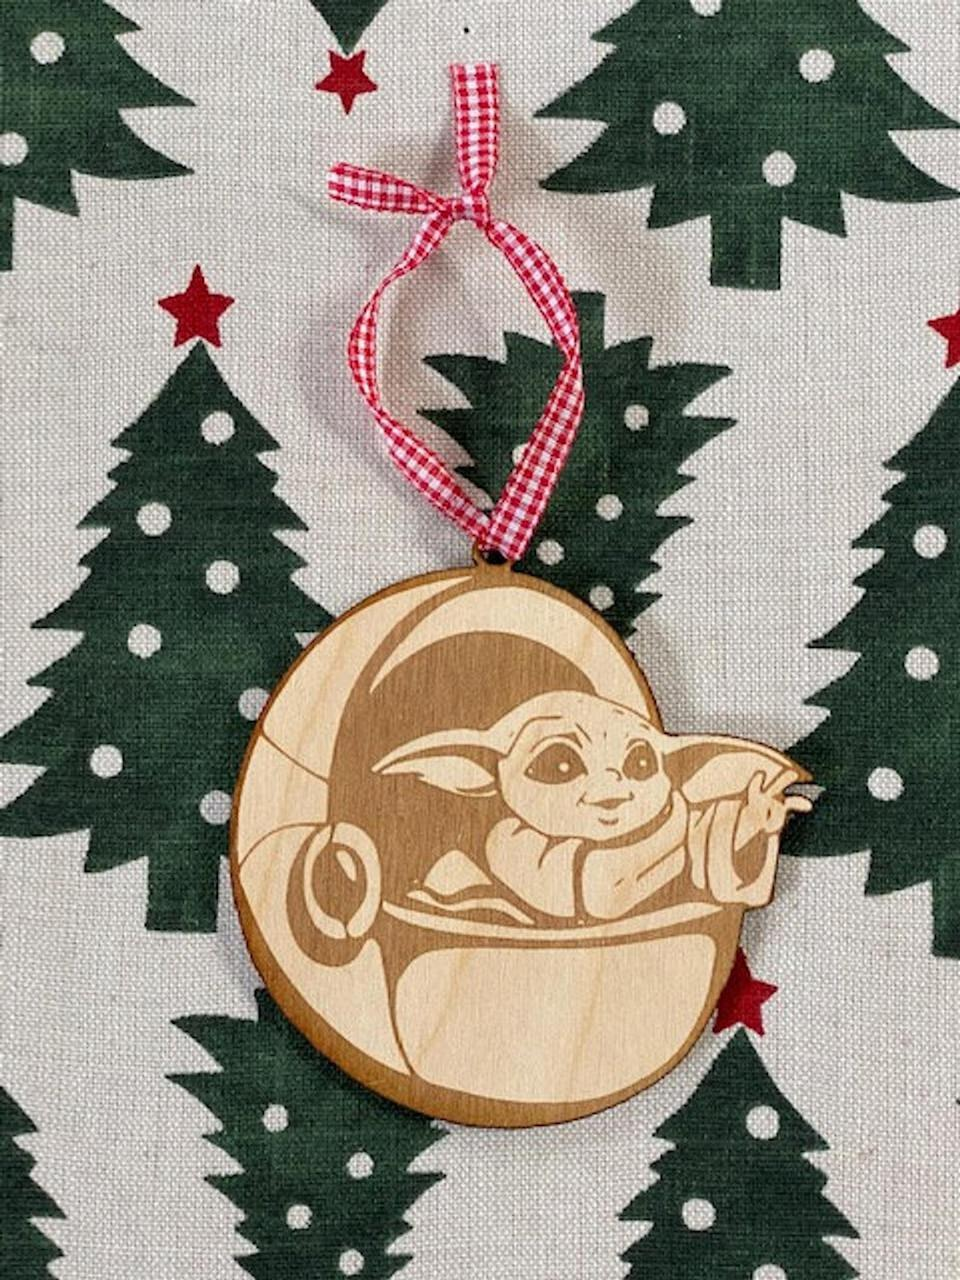 """Get them into the holiday spirit with this ornament that's been handmade in the Midwest. It'll look perfect on a tree or just hanging around on a hook. And they'll definitely want to keep it around for years. <a href=""""https://fave.co/3qpSbVU"""" target=""""_blank"""" rel=""""noopener noreferrer"""">Find it for $8 on Etsy</a>."""